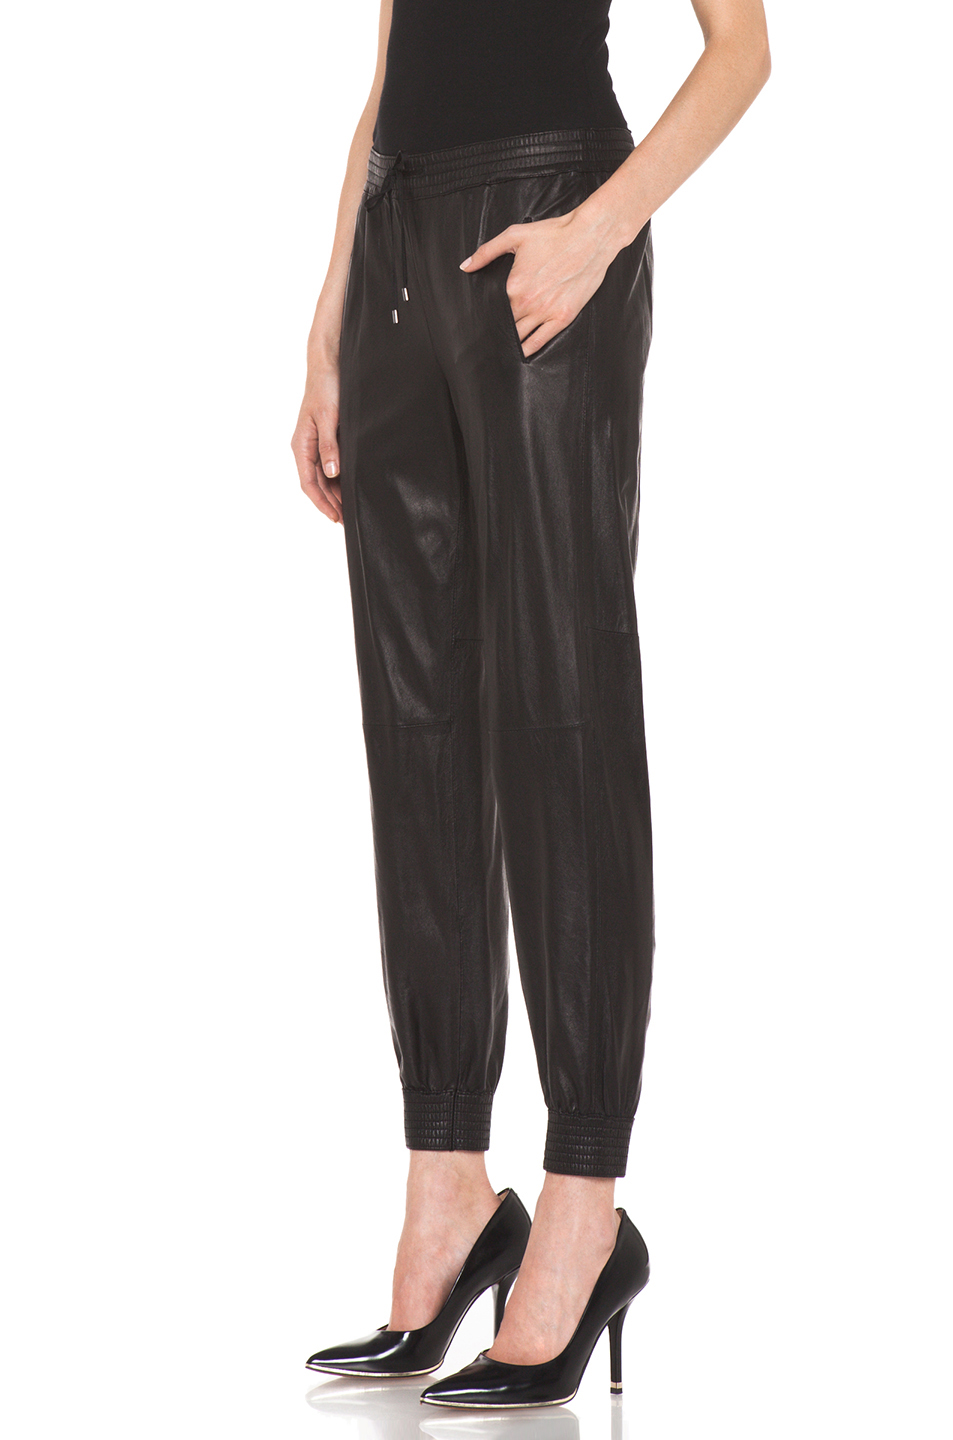 GoJane even carries affordable faux leather joggers if you want to rock some texture with this cool trend. If you're loving the look of wider legs this season, GoJane also has a wide selection of palazzo pants and harem pants that true fashionistas will know exactly how to wear.